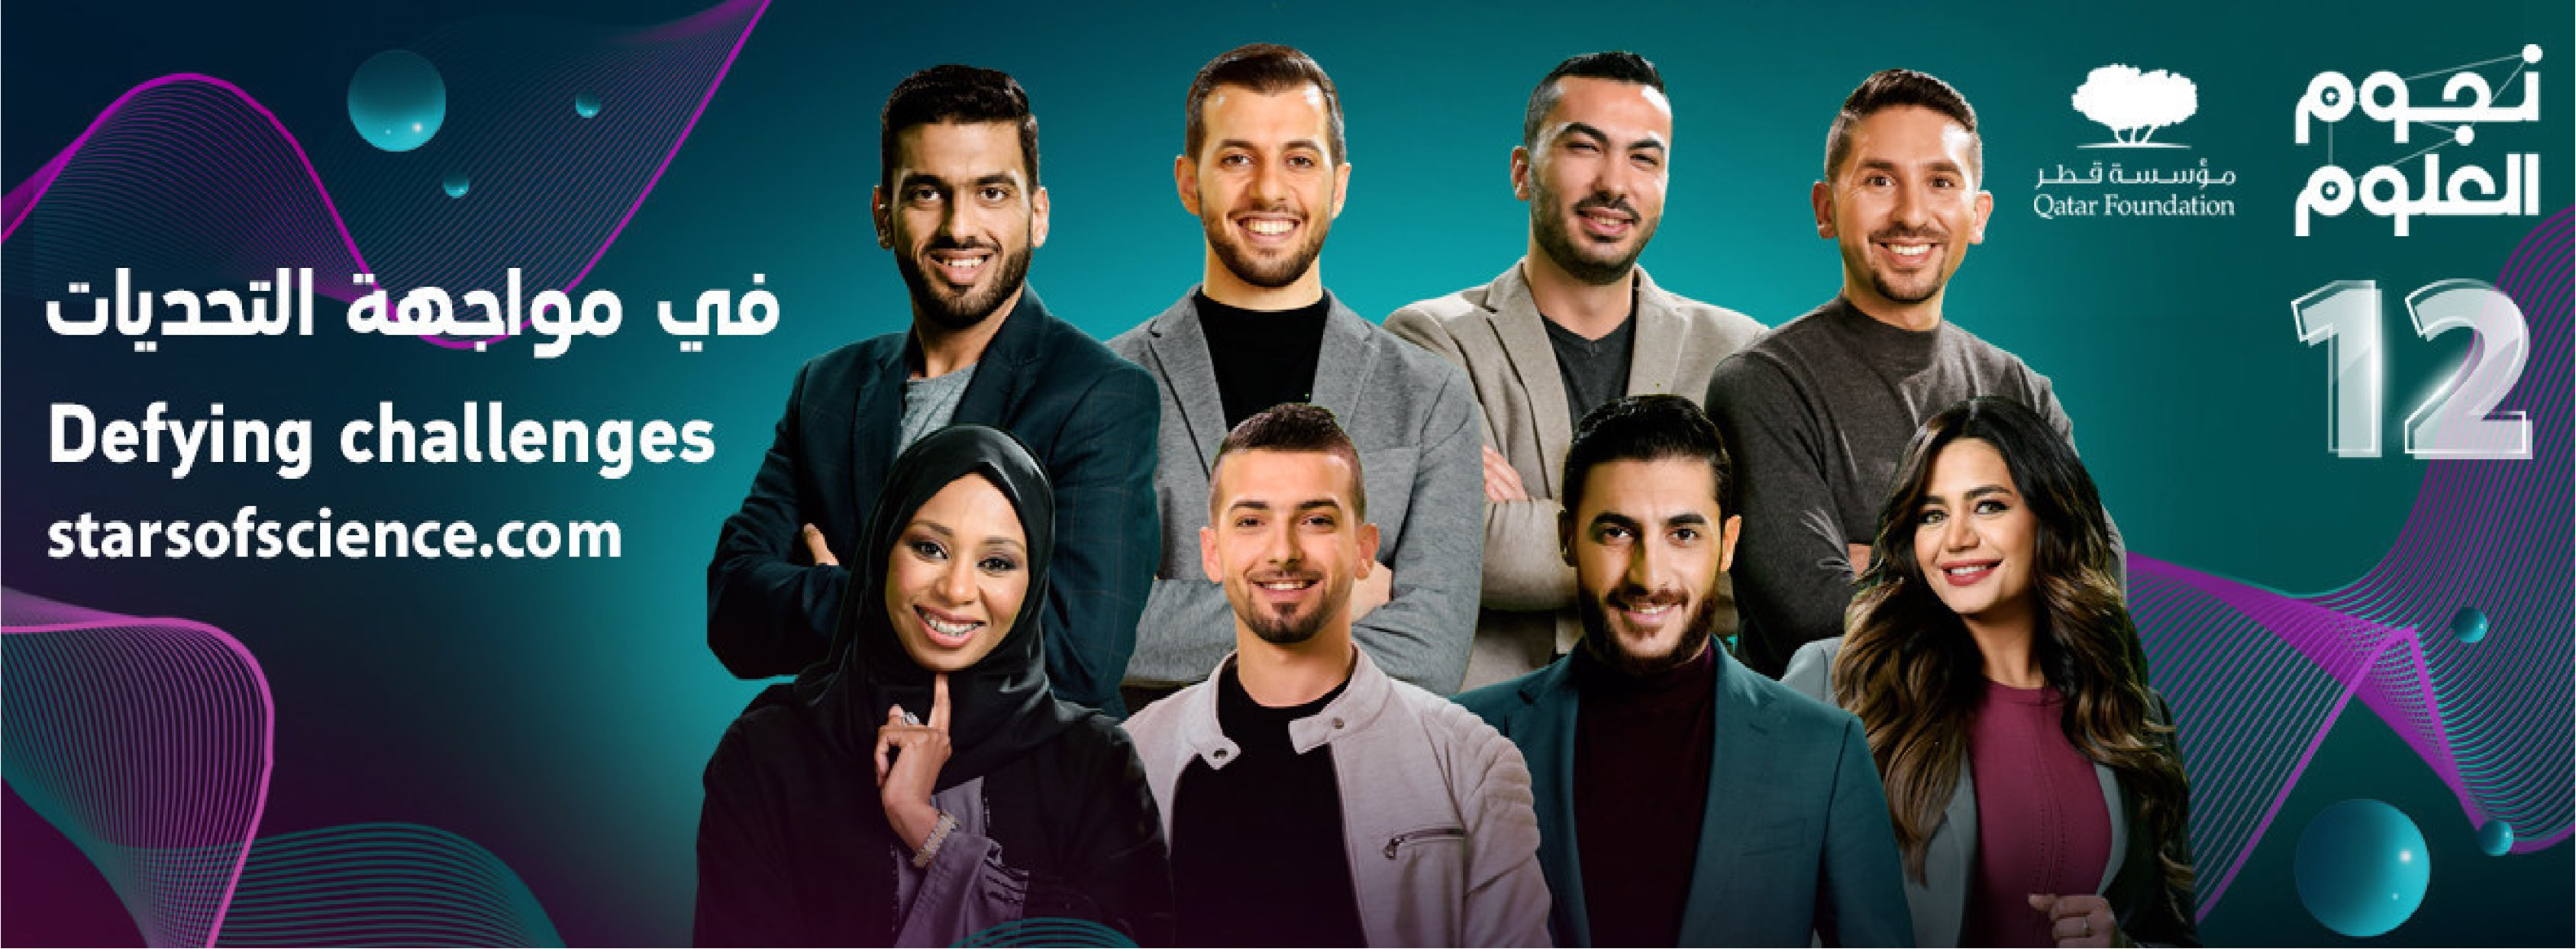 The 8 remaining contestants in Stars of Science